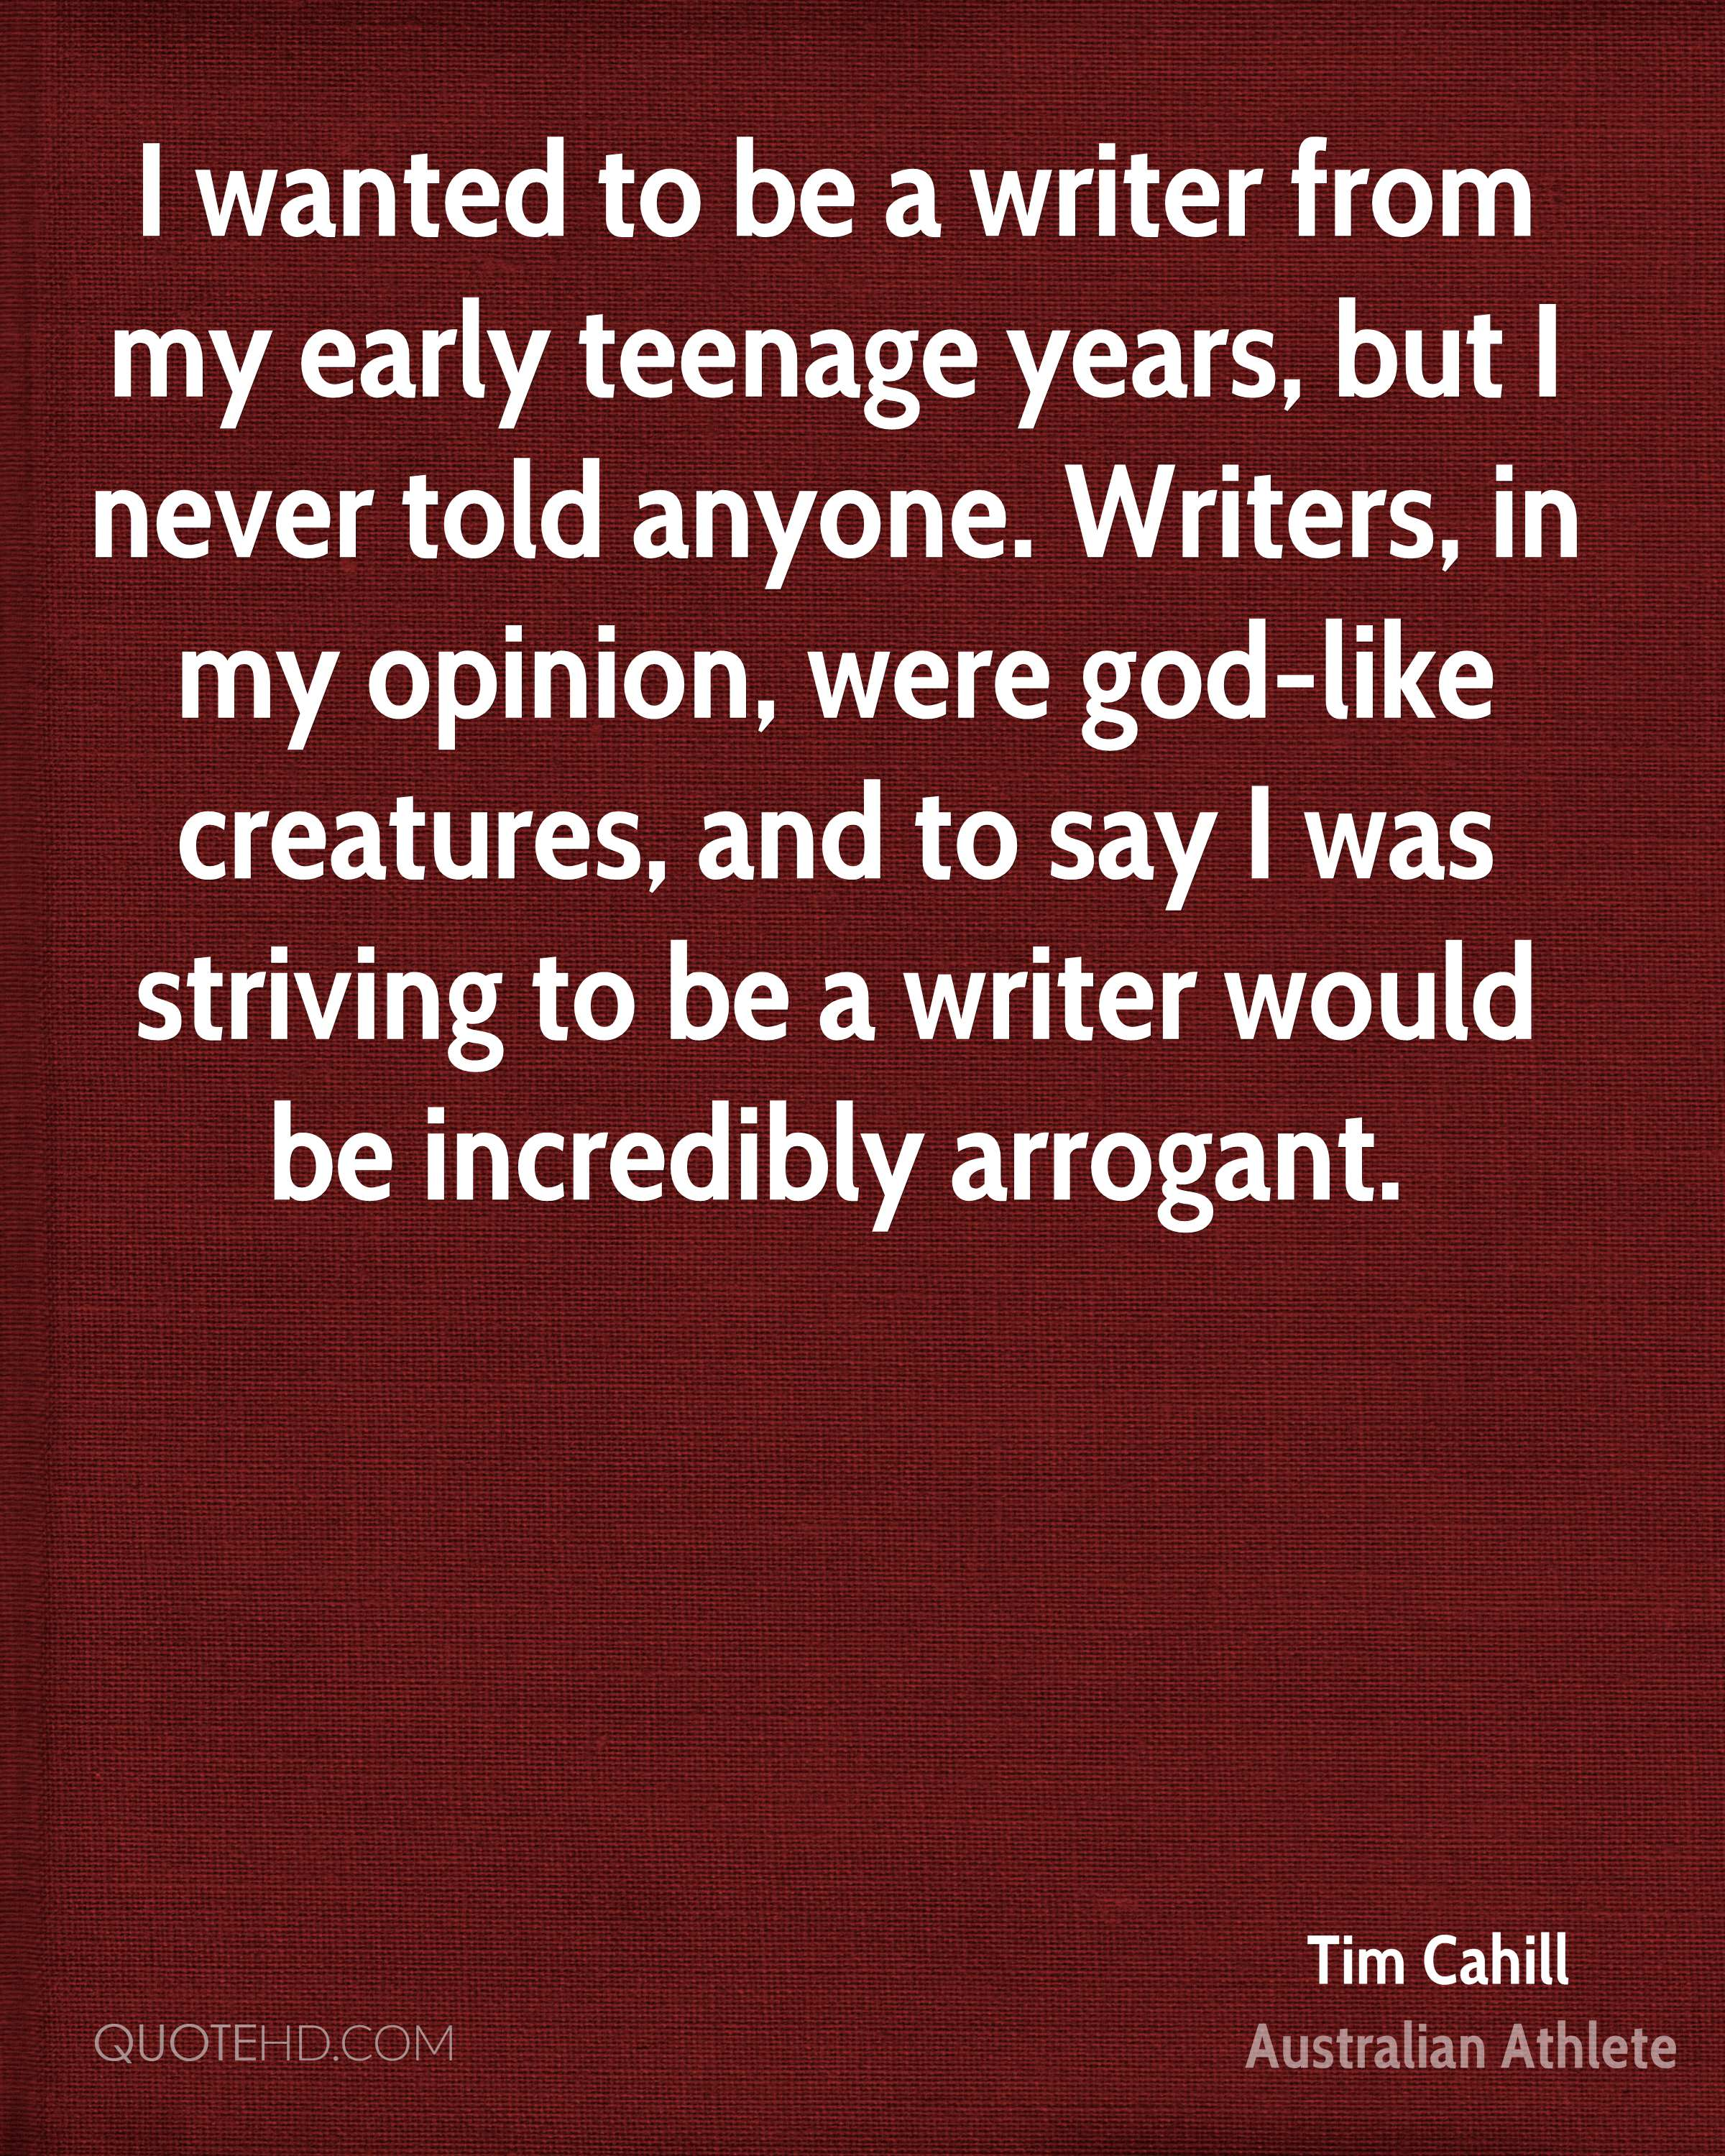 I wanted to be a writer from my early teenage years, but I never told anyone. Writers, in my opinion, were god-like creatures, and to say I was striving to be a writer would be incredibly arrogant.